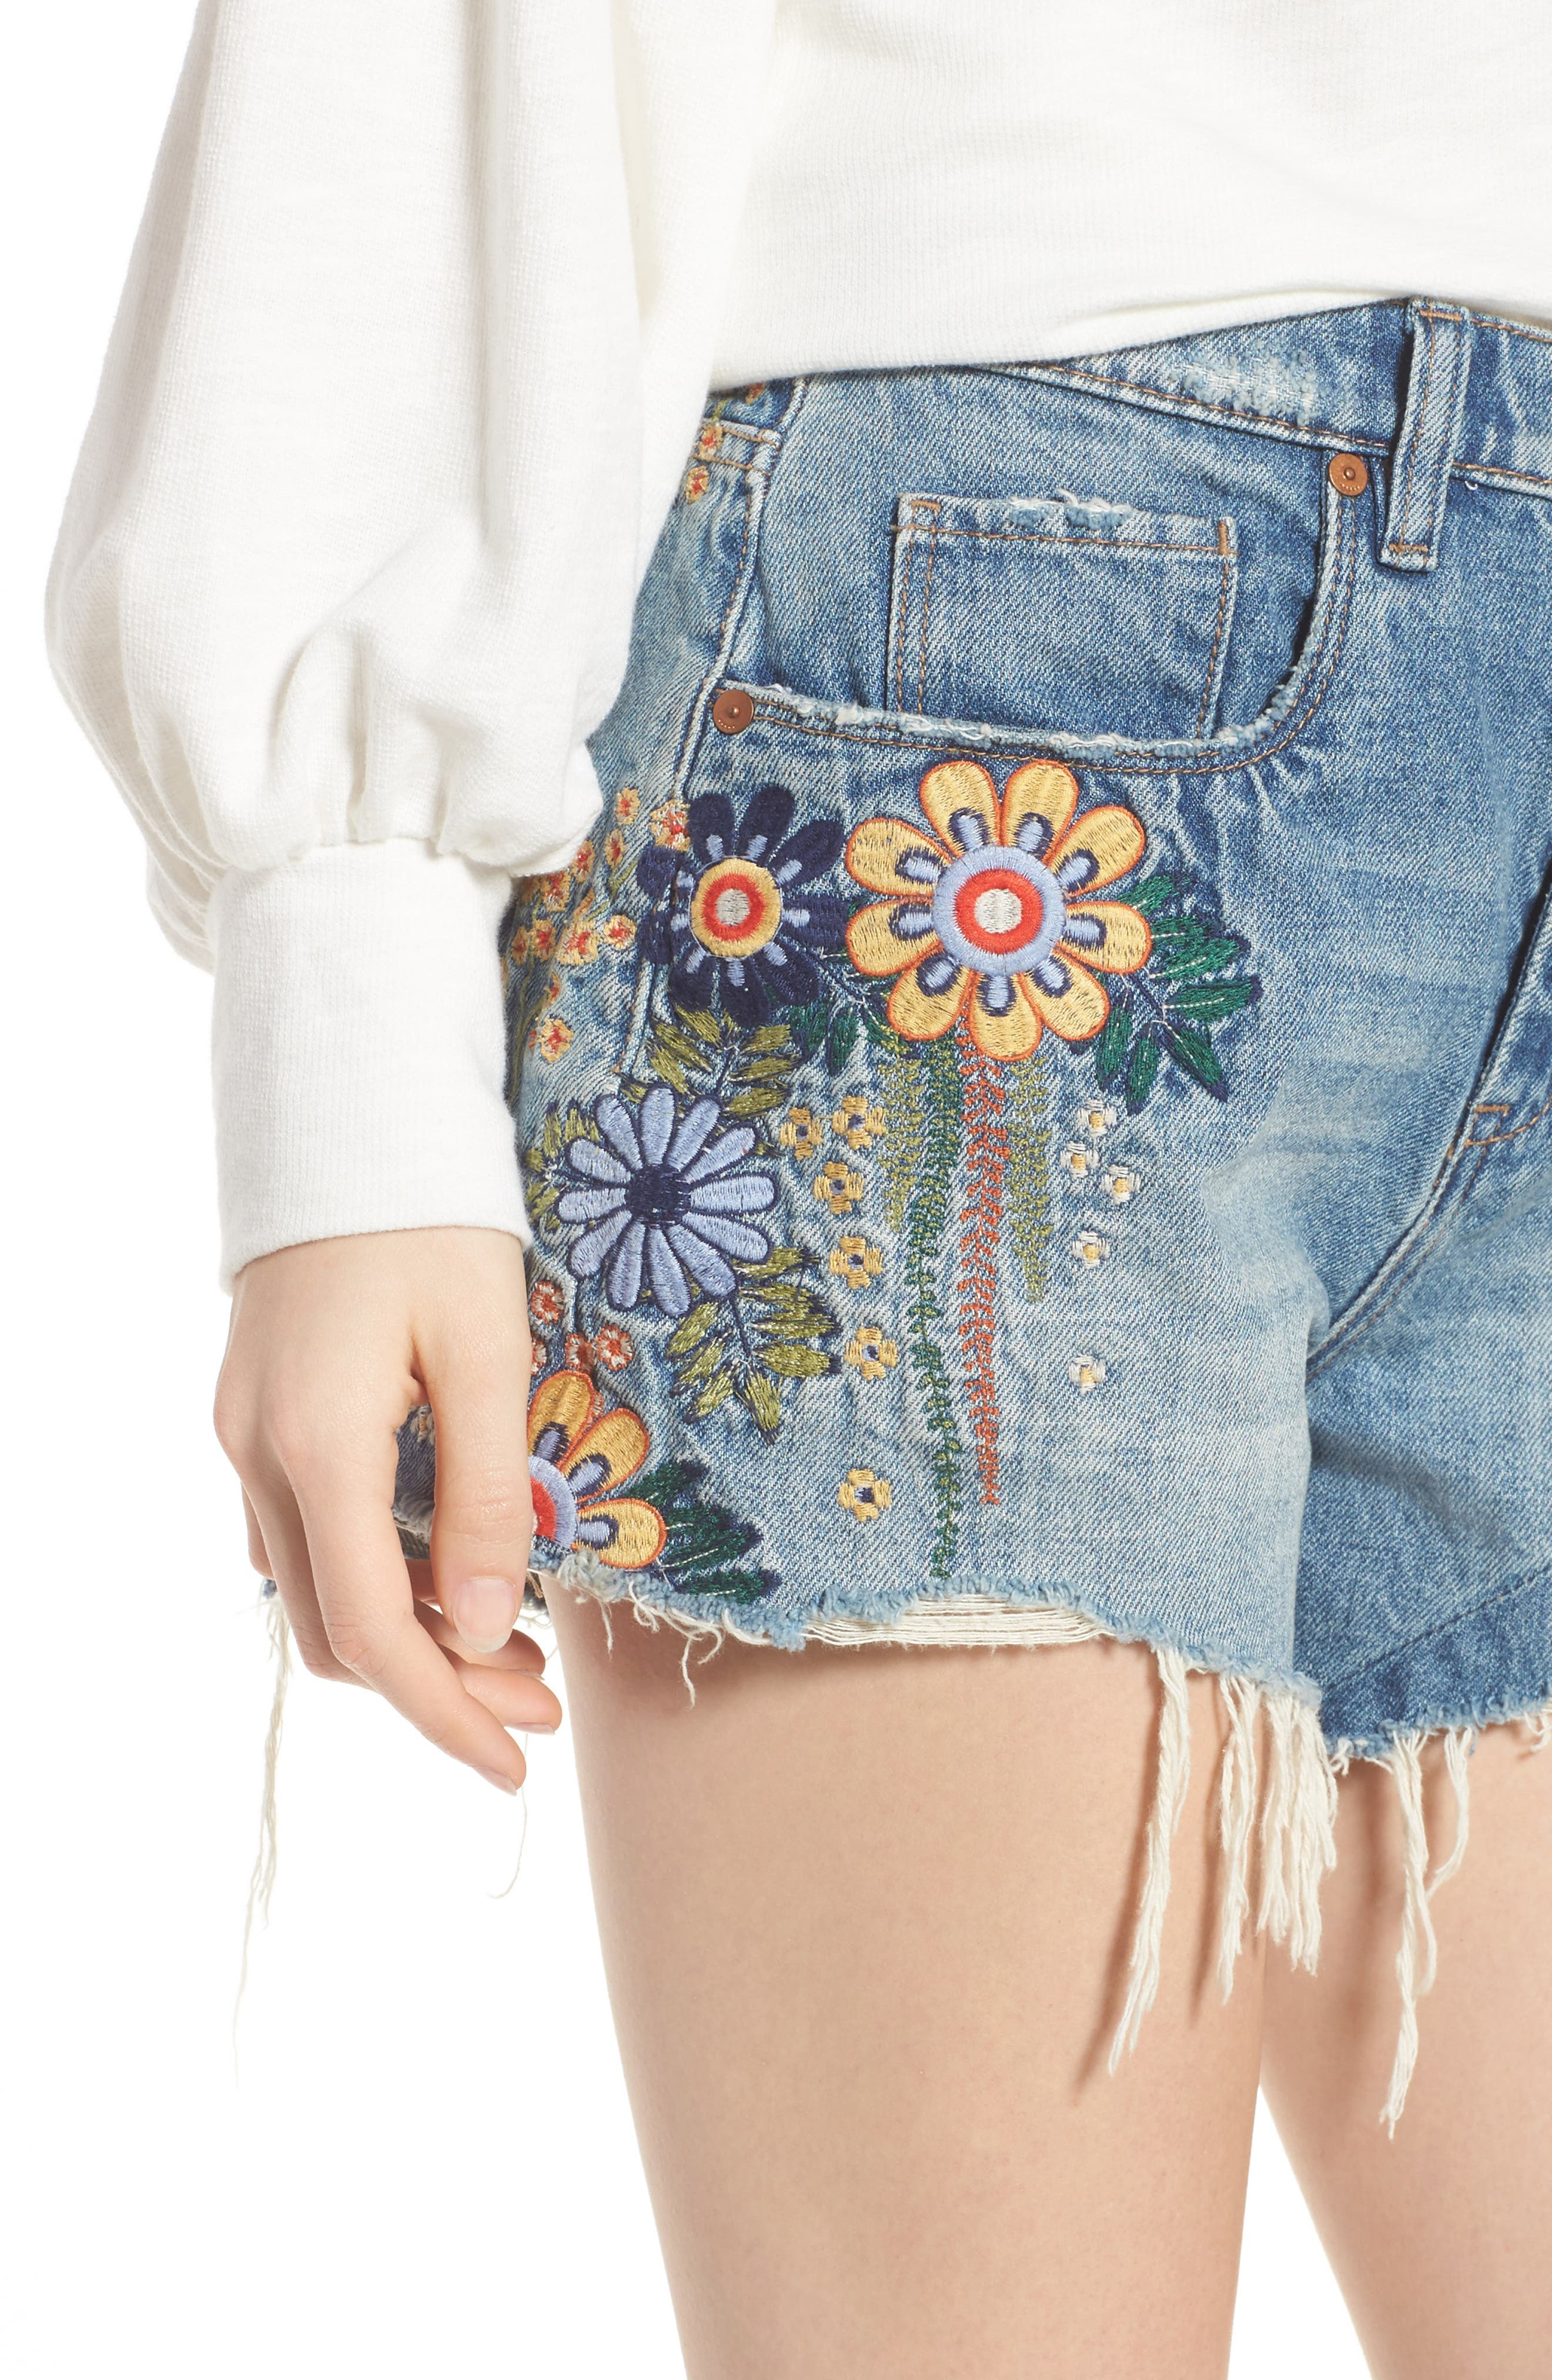 Sonic Bloom Embroidered Denim Shorts,                             Alternate thumbnail 4, color,                             400